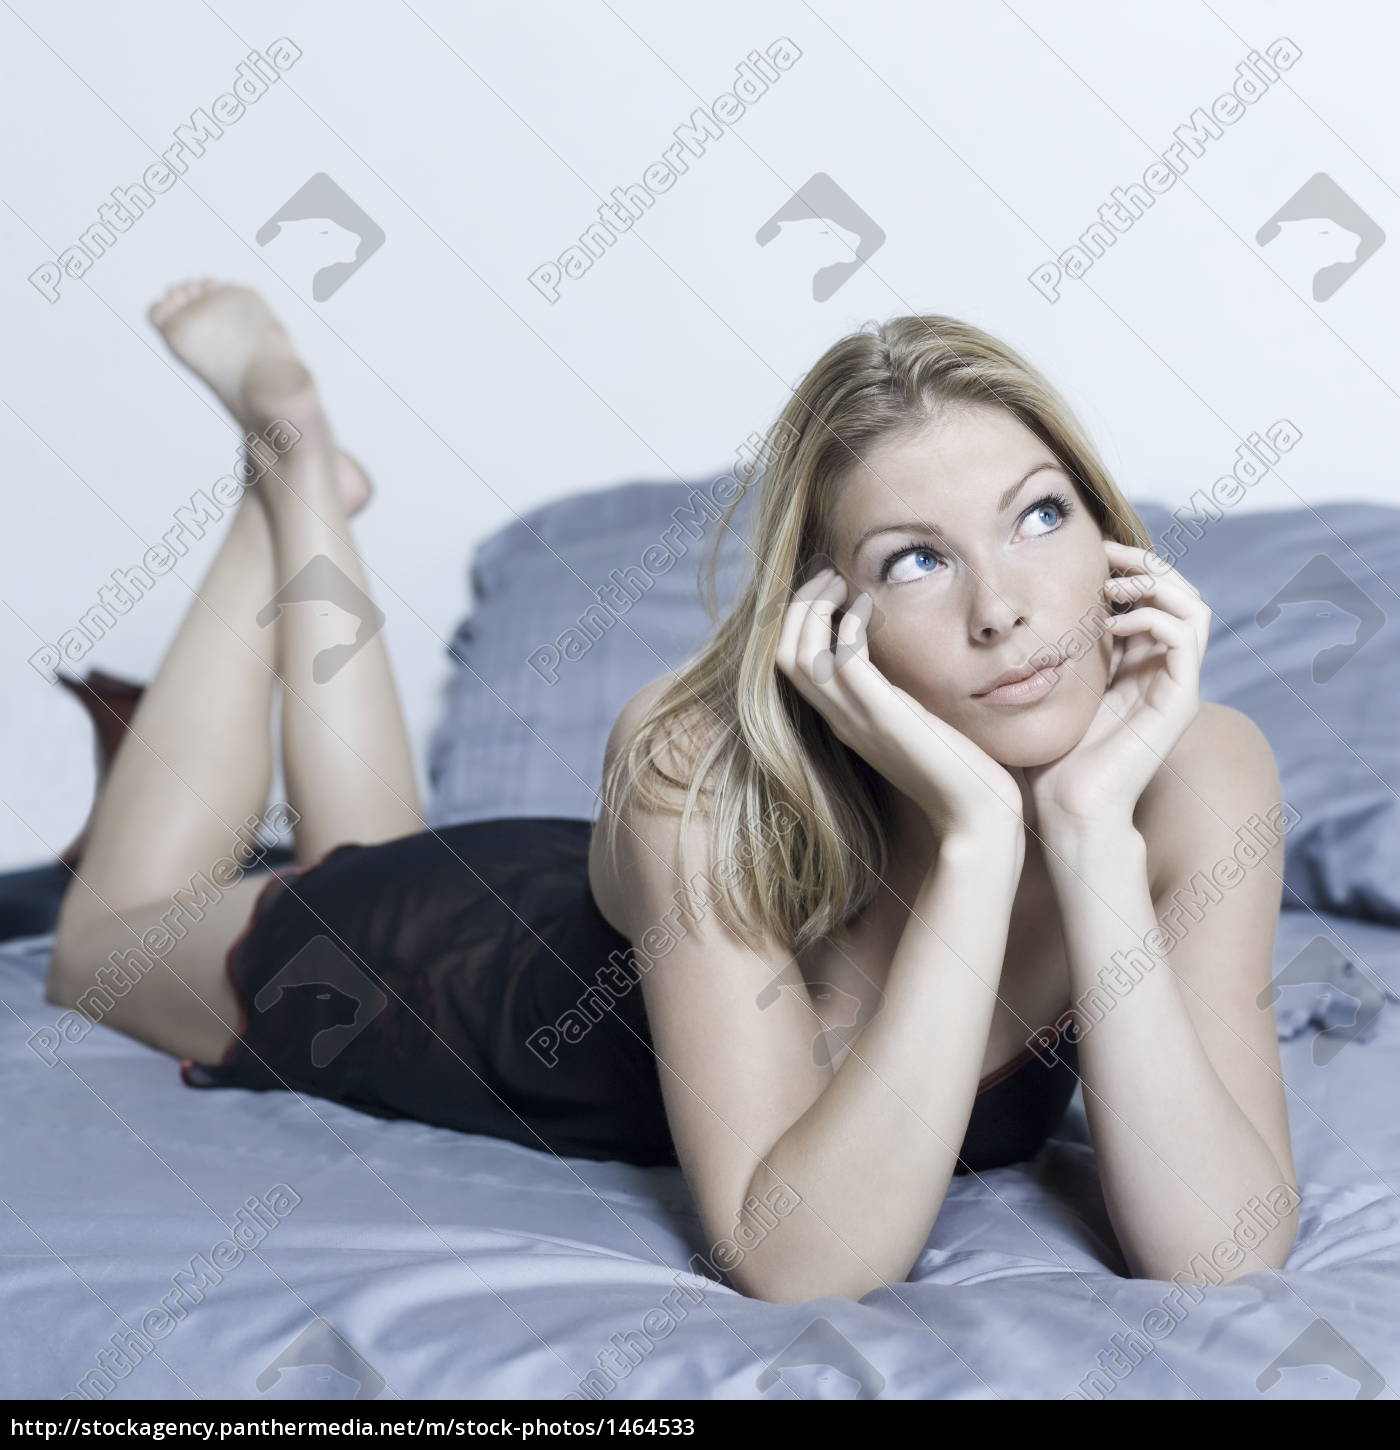 woman, lying, on, a, bed - 1464533